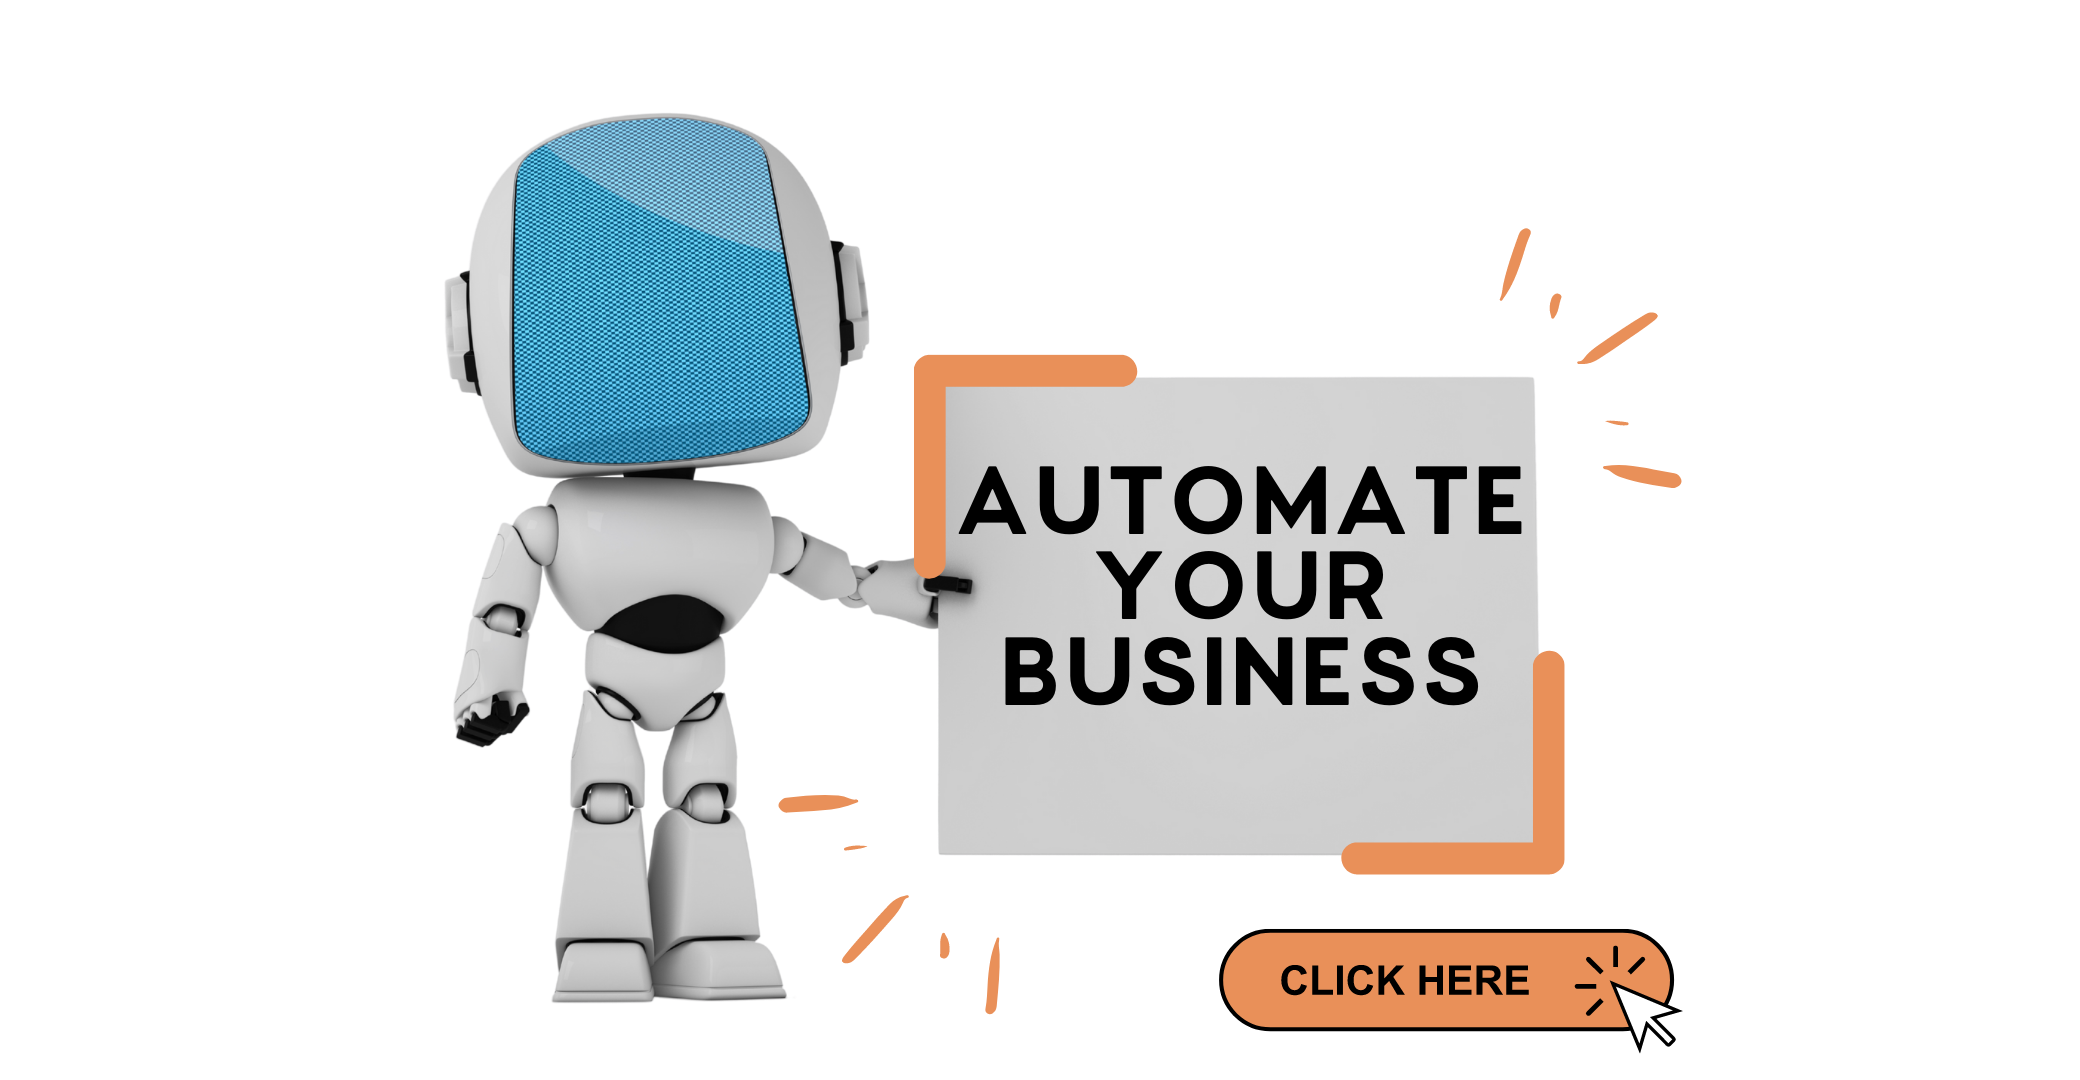 Automate Your Business!